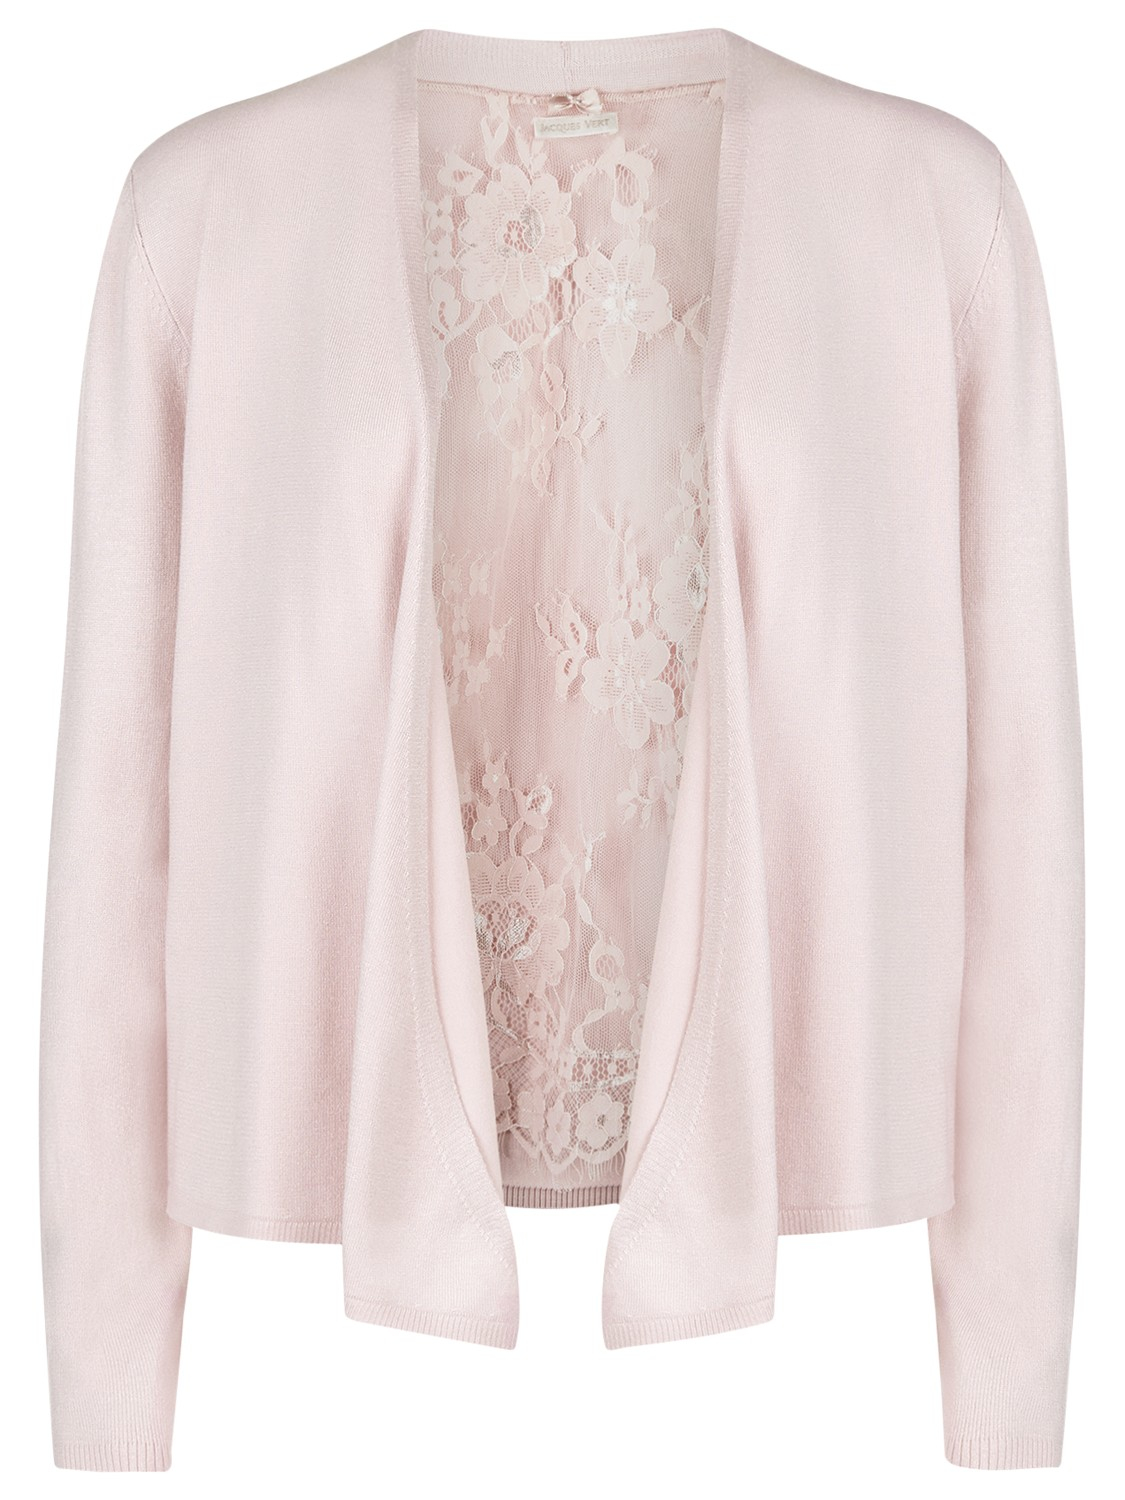 Jacques vert Lace Waterfall Cardigan in Pink | Lyst